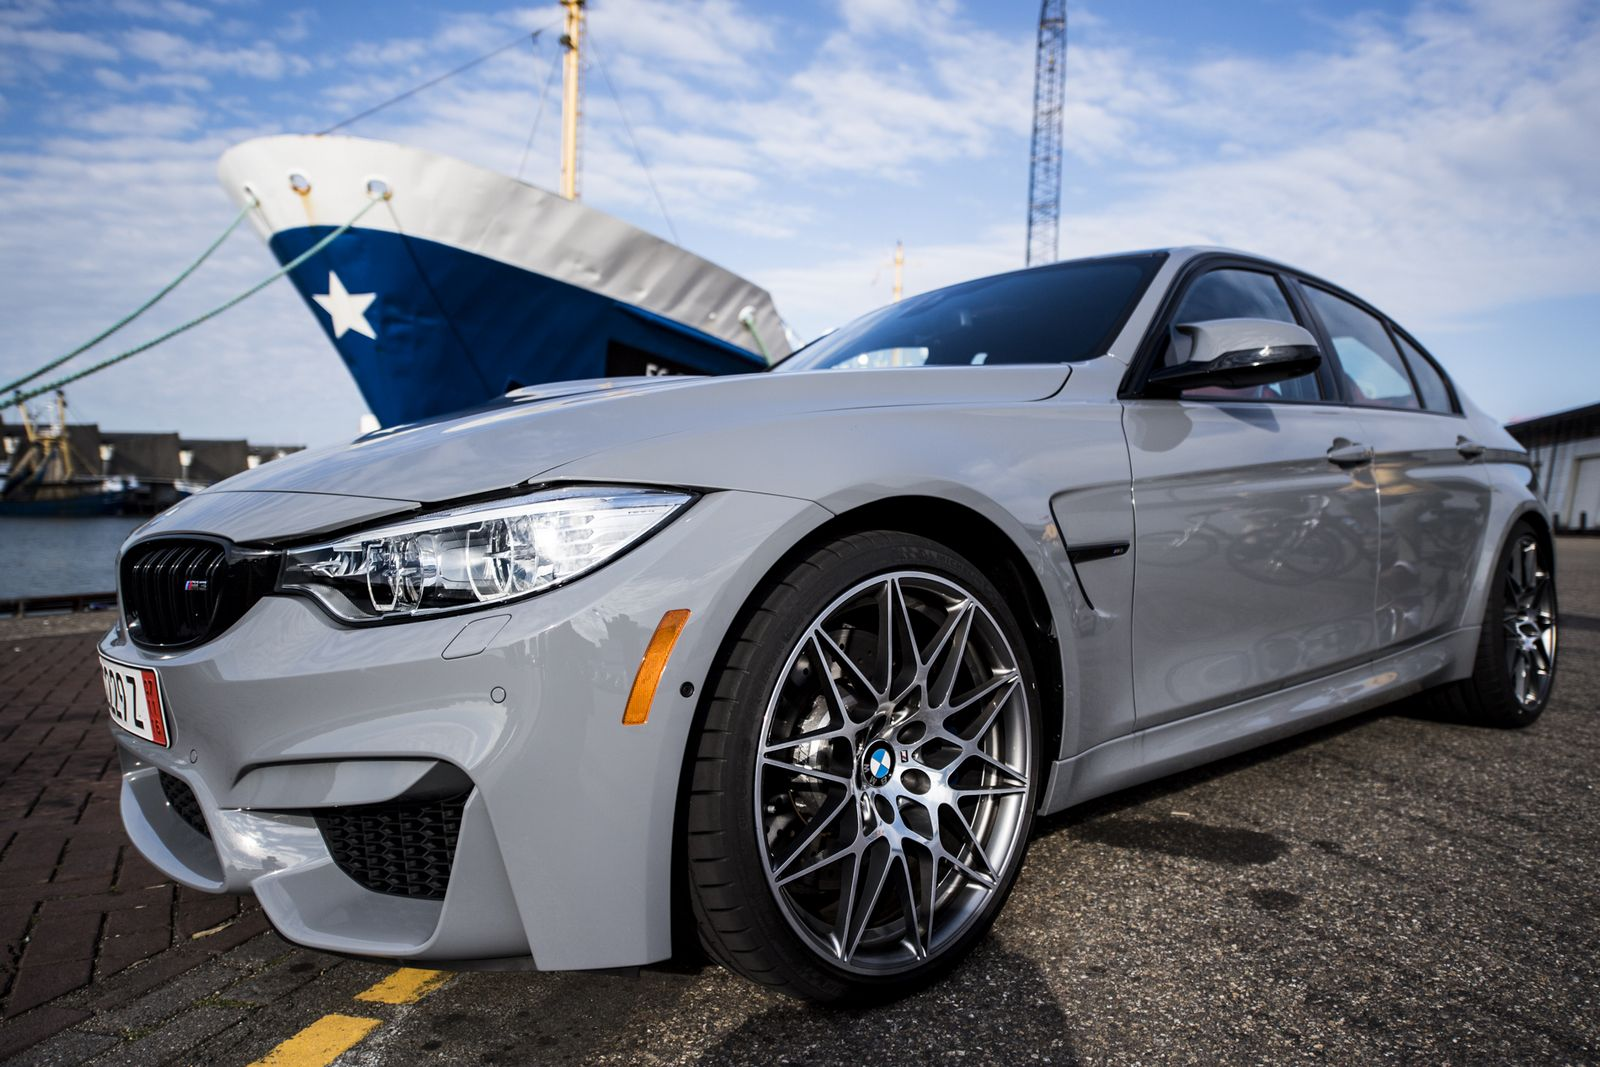 F80 Bmw M3 In Nardo Grey Looks Extremely Aggressive And Feels